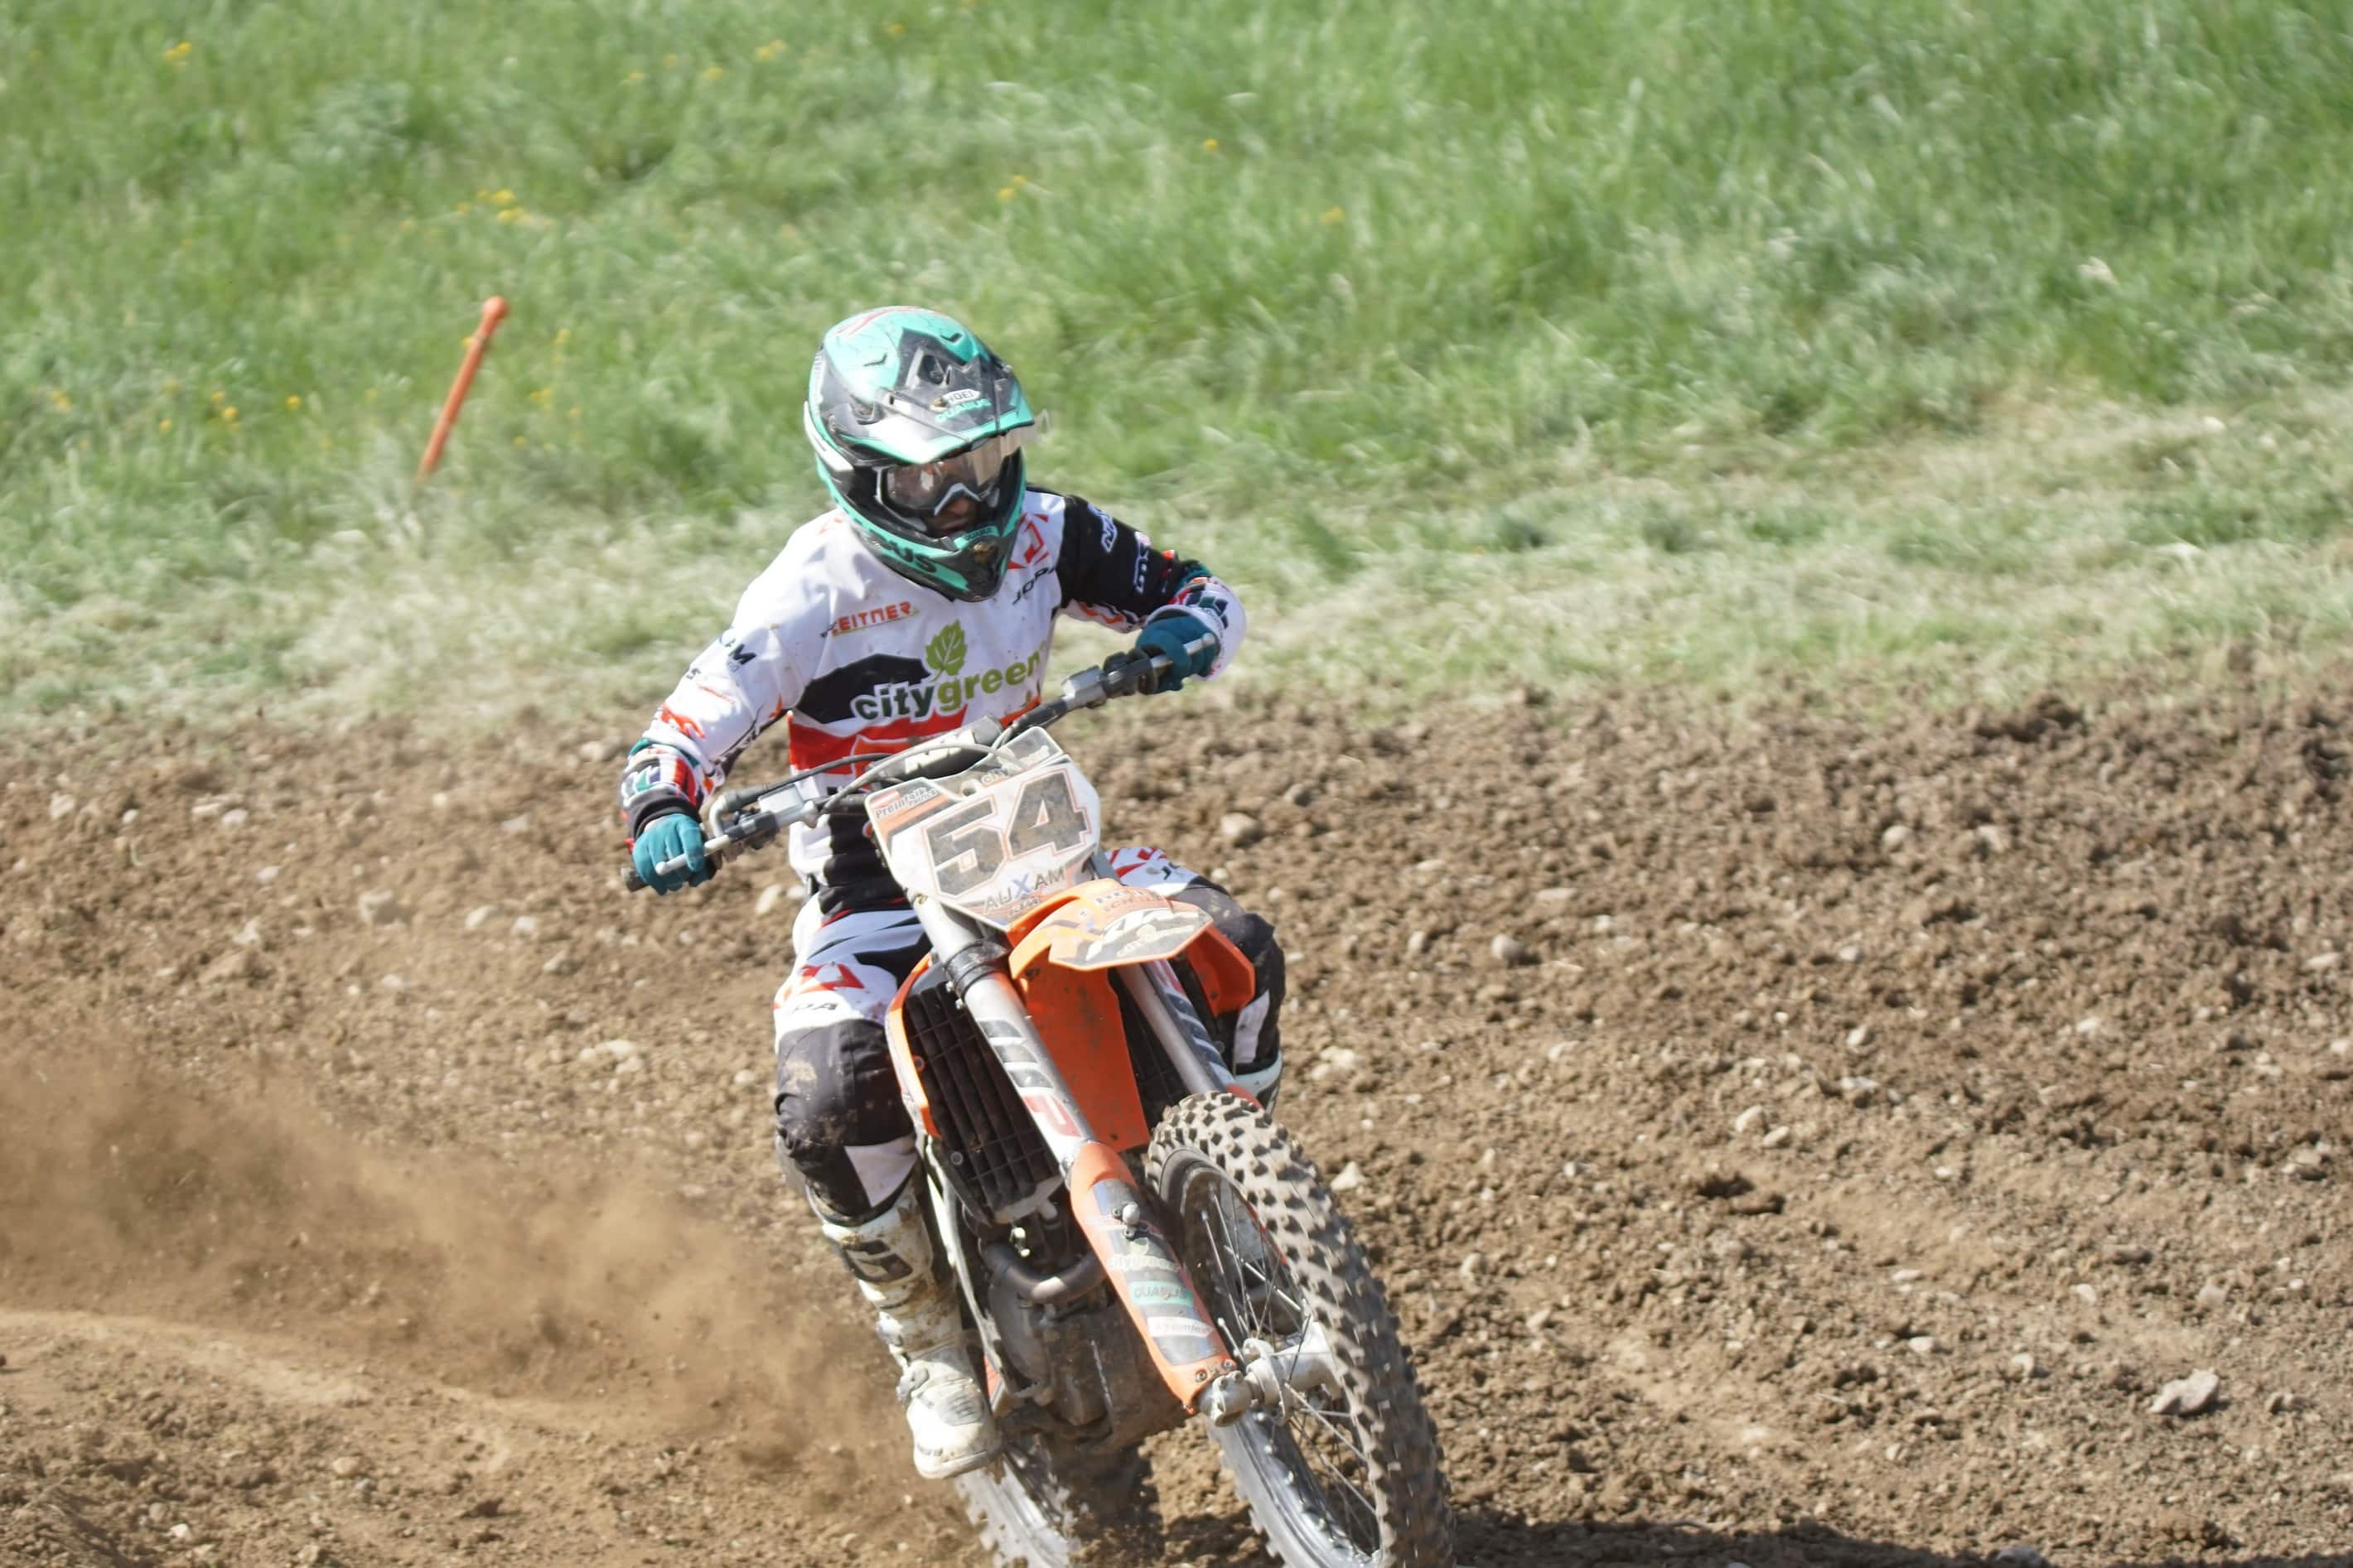 DSC 868_Moto Cross Sittendorf Teil1 am 29.04.2018